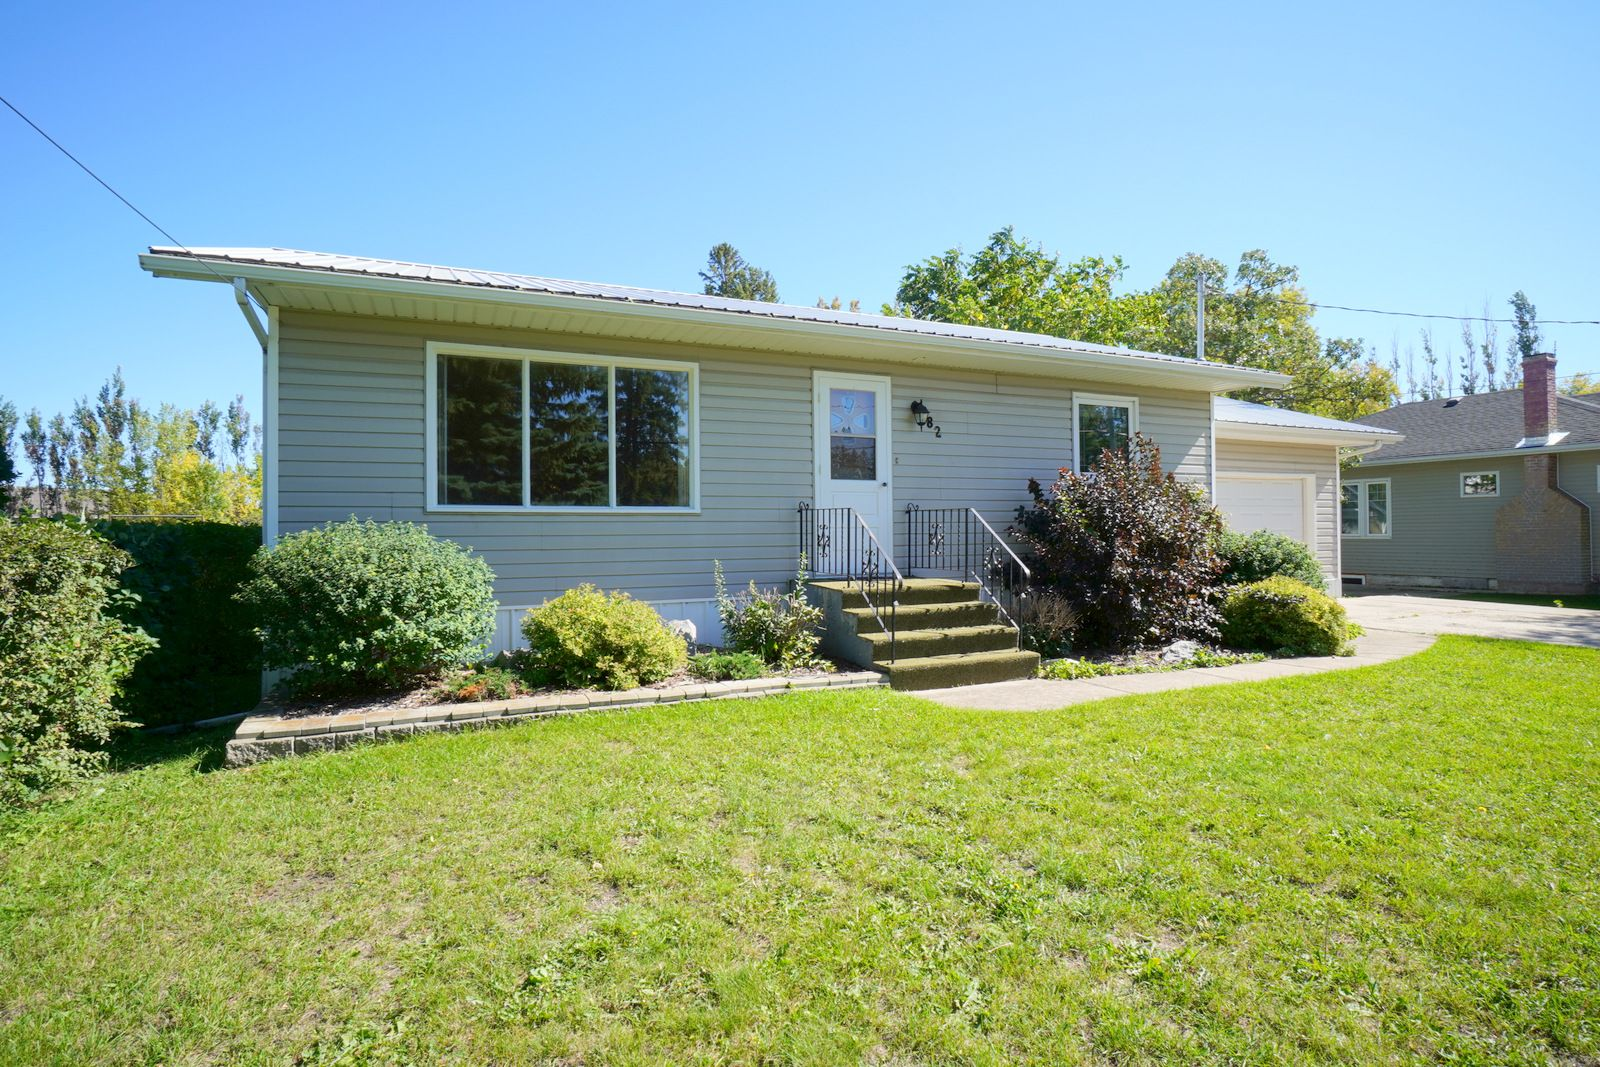 Main Photo: 82 Grafton St in Macgregor: House for sale : MLS®# 202123024